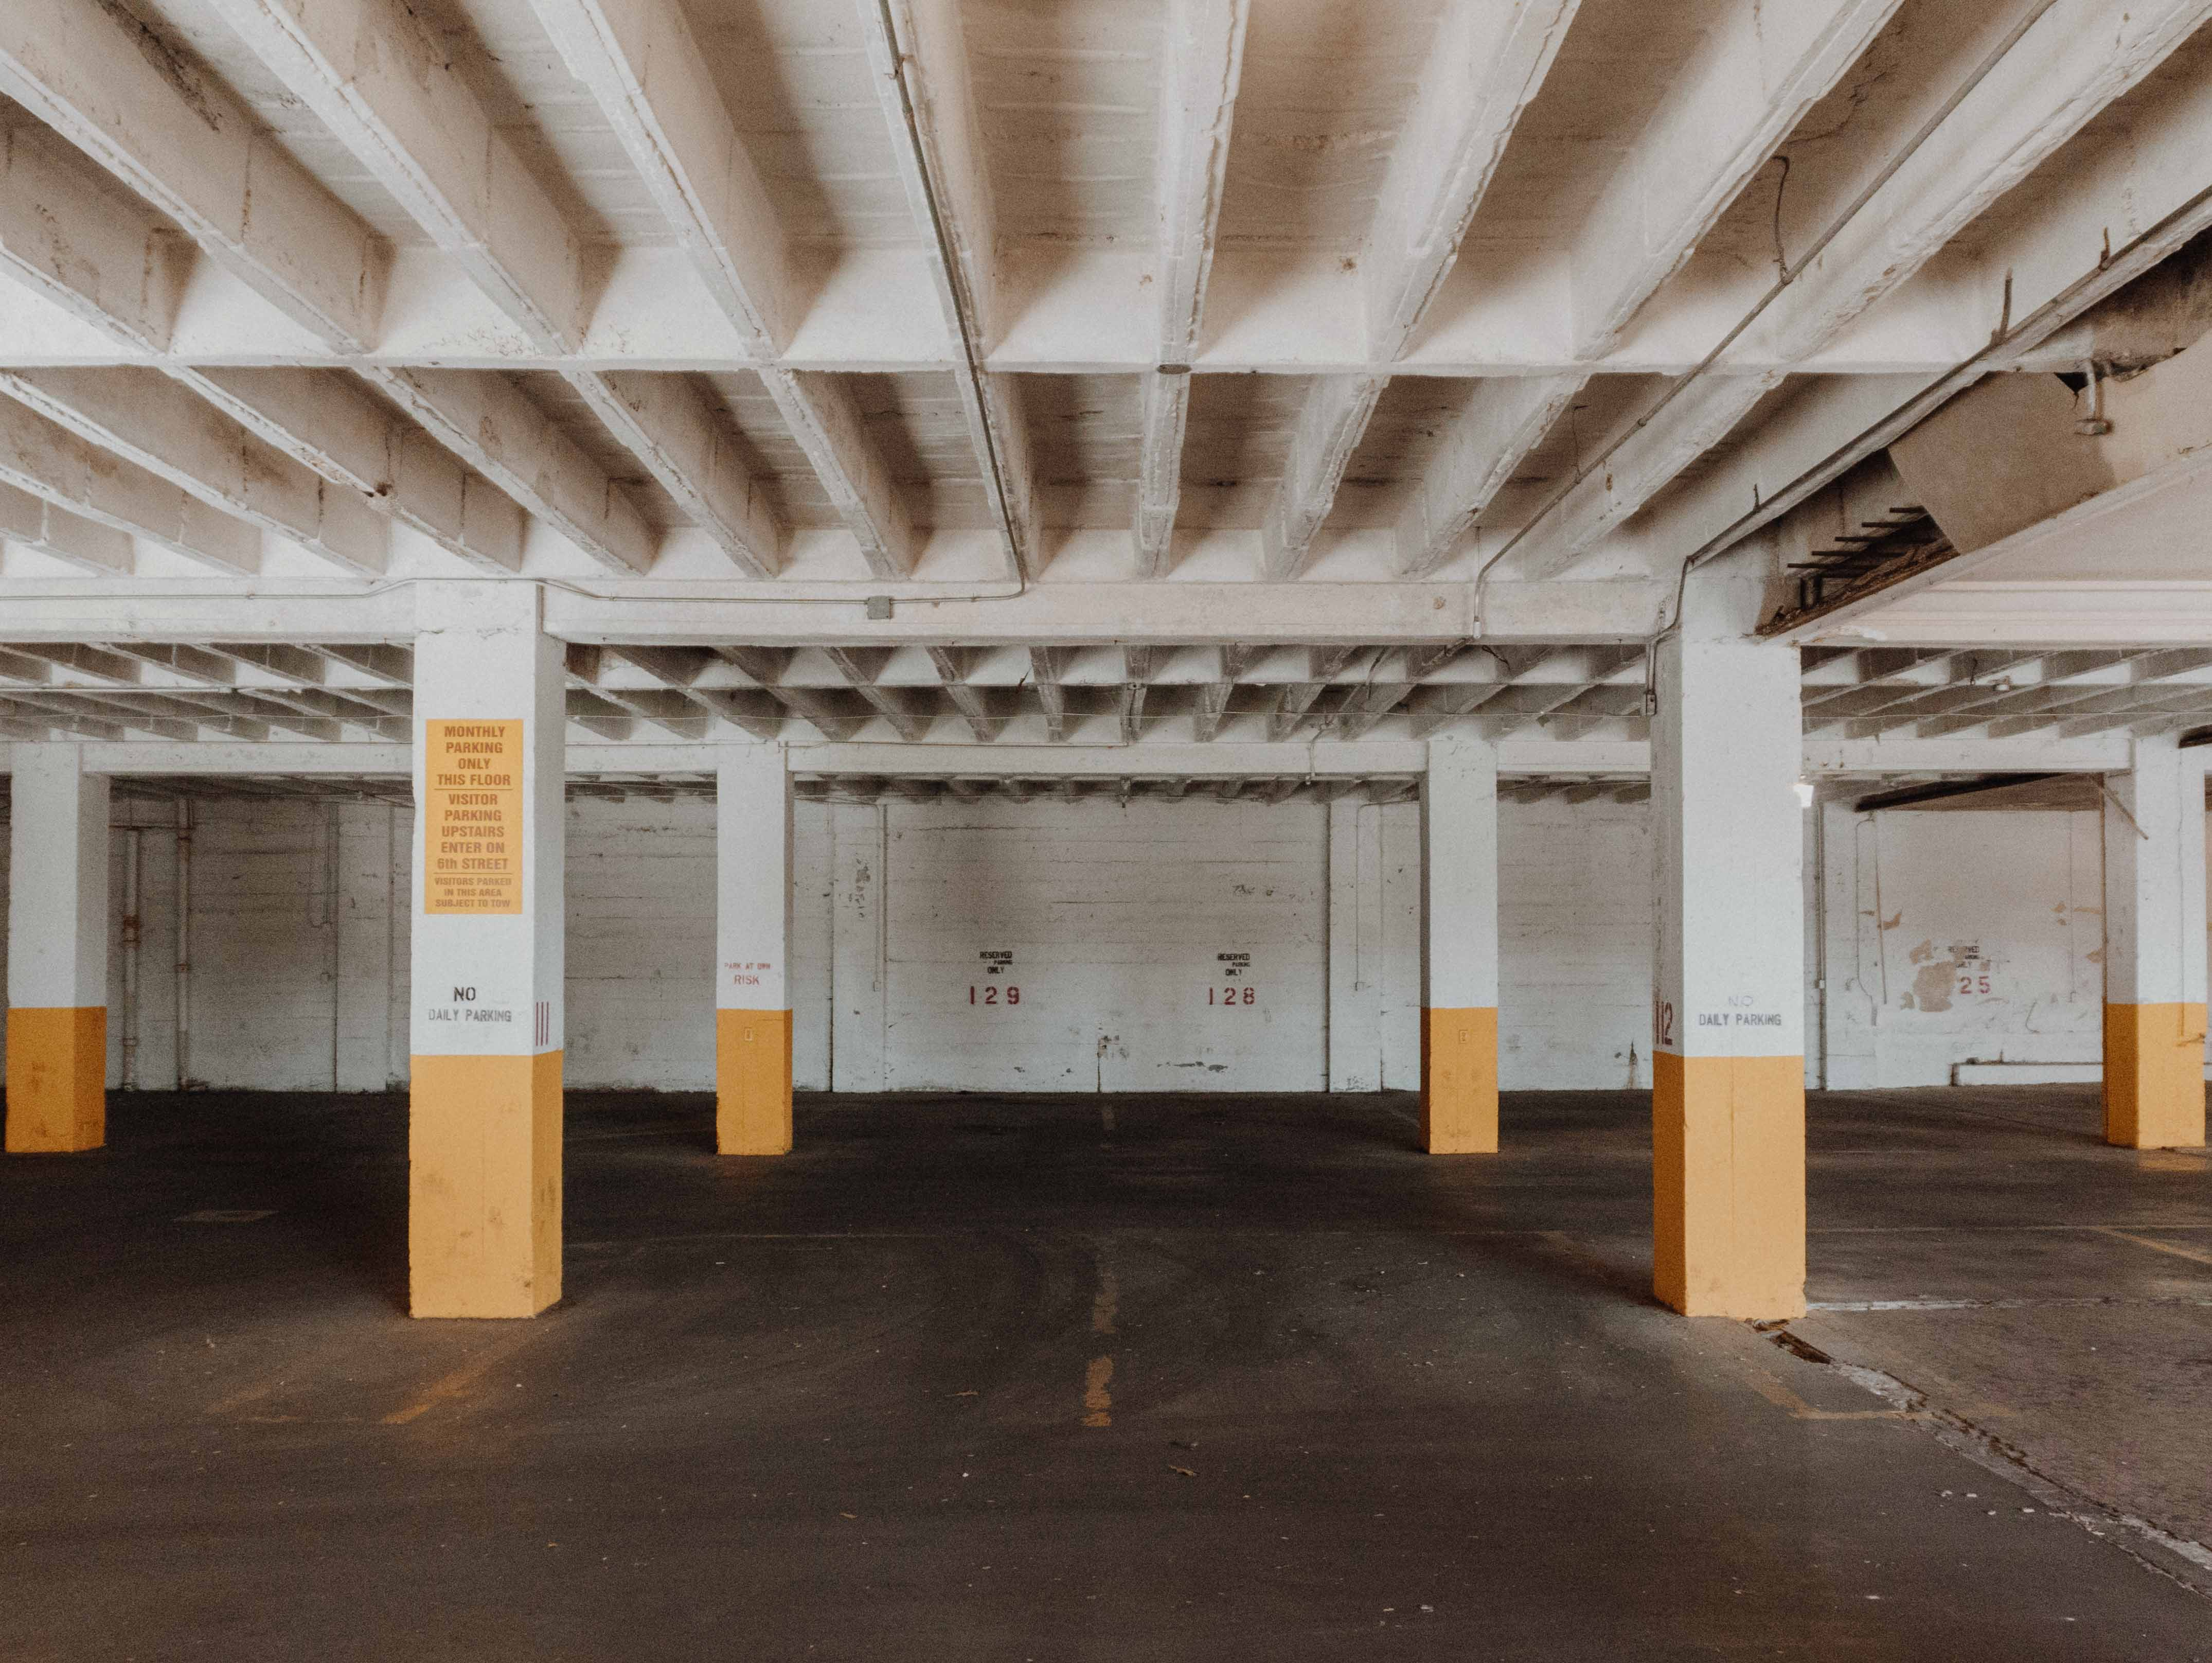 white and brown underground parking area